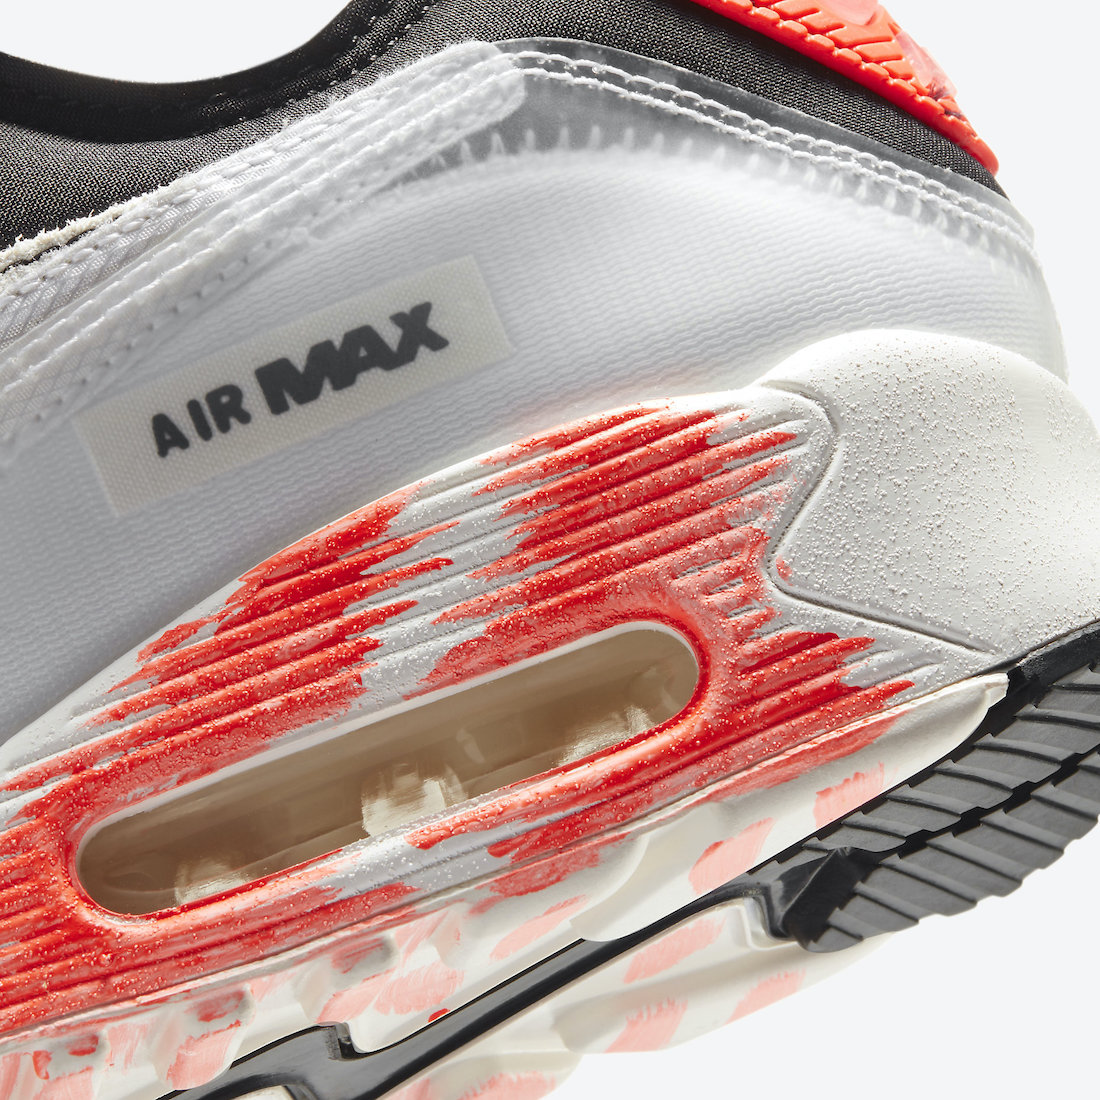 Nike-Air-Max-90-Archetype-DC7856-100-Release-Date-6